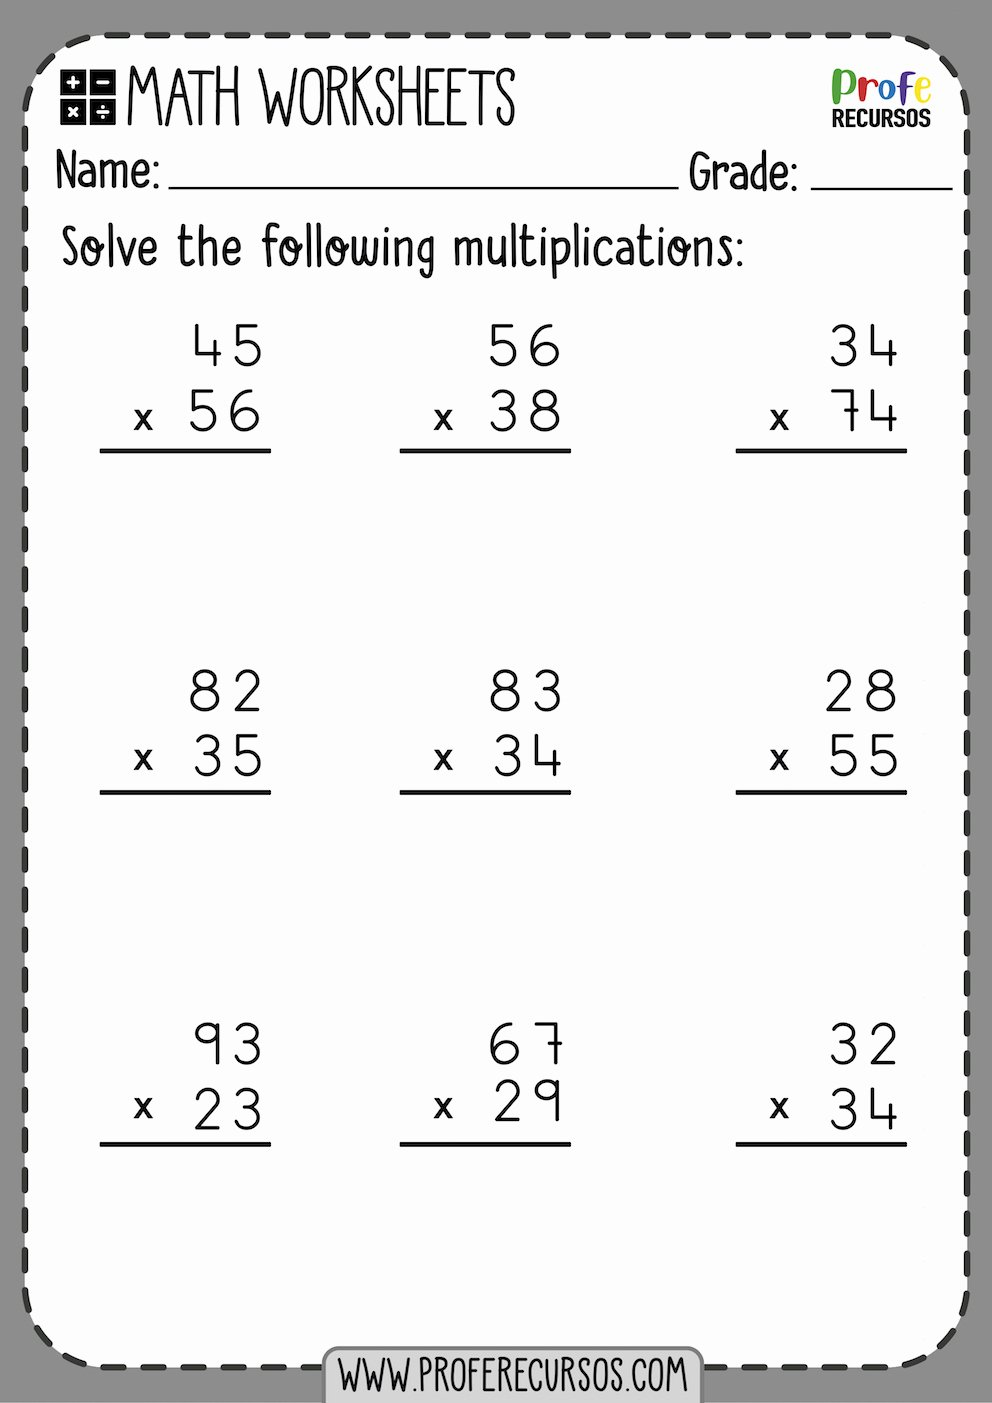 Multiplication Worksheets 2 Digit top Math Worksheet Multiplication Worksheets for Grade 2 Free